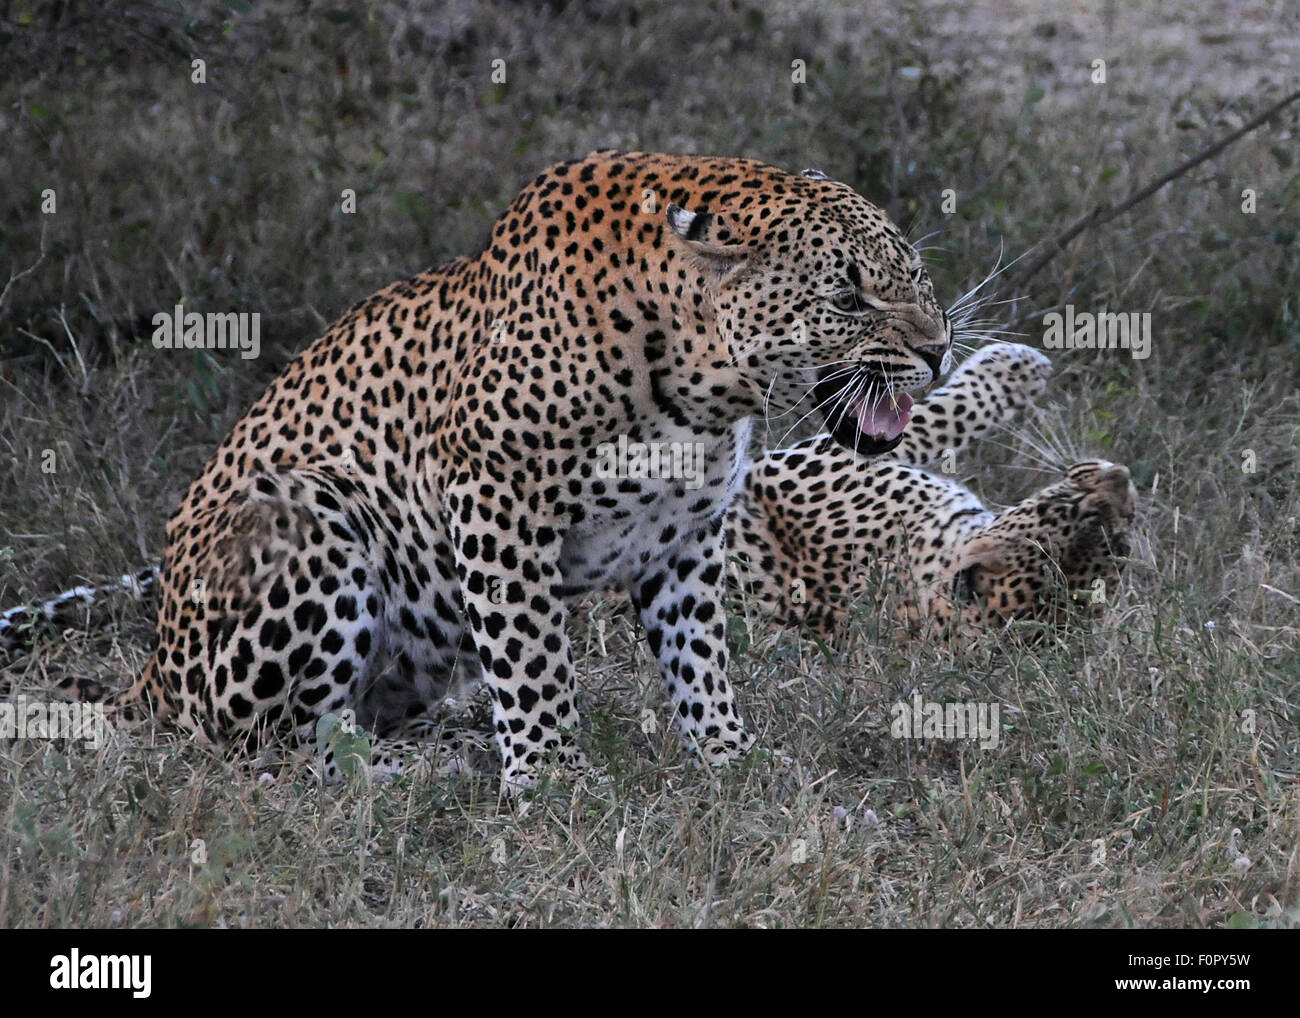 Male leopard snarls after mating while female contentedly lies on her back. - Stock Image